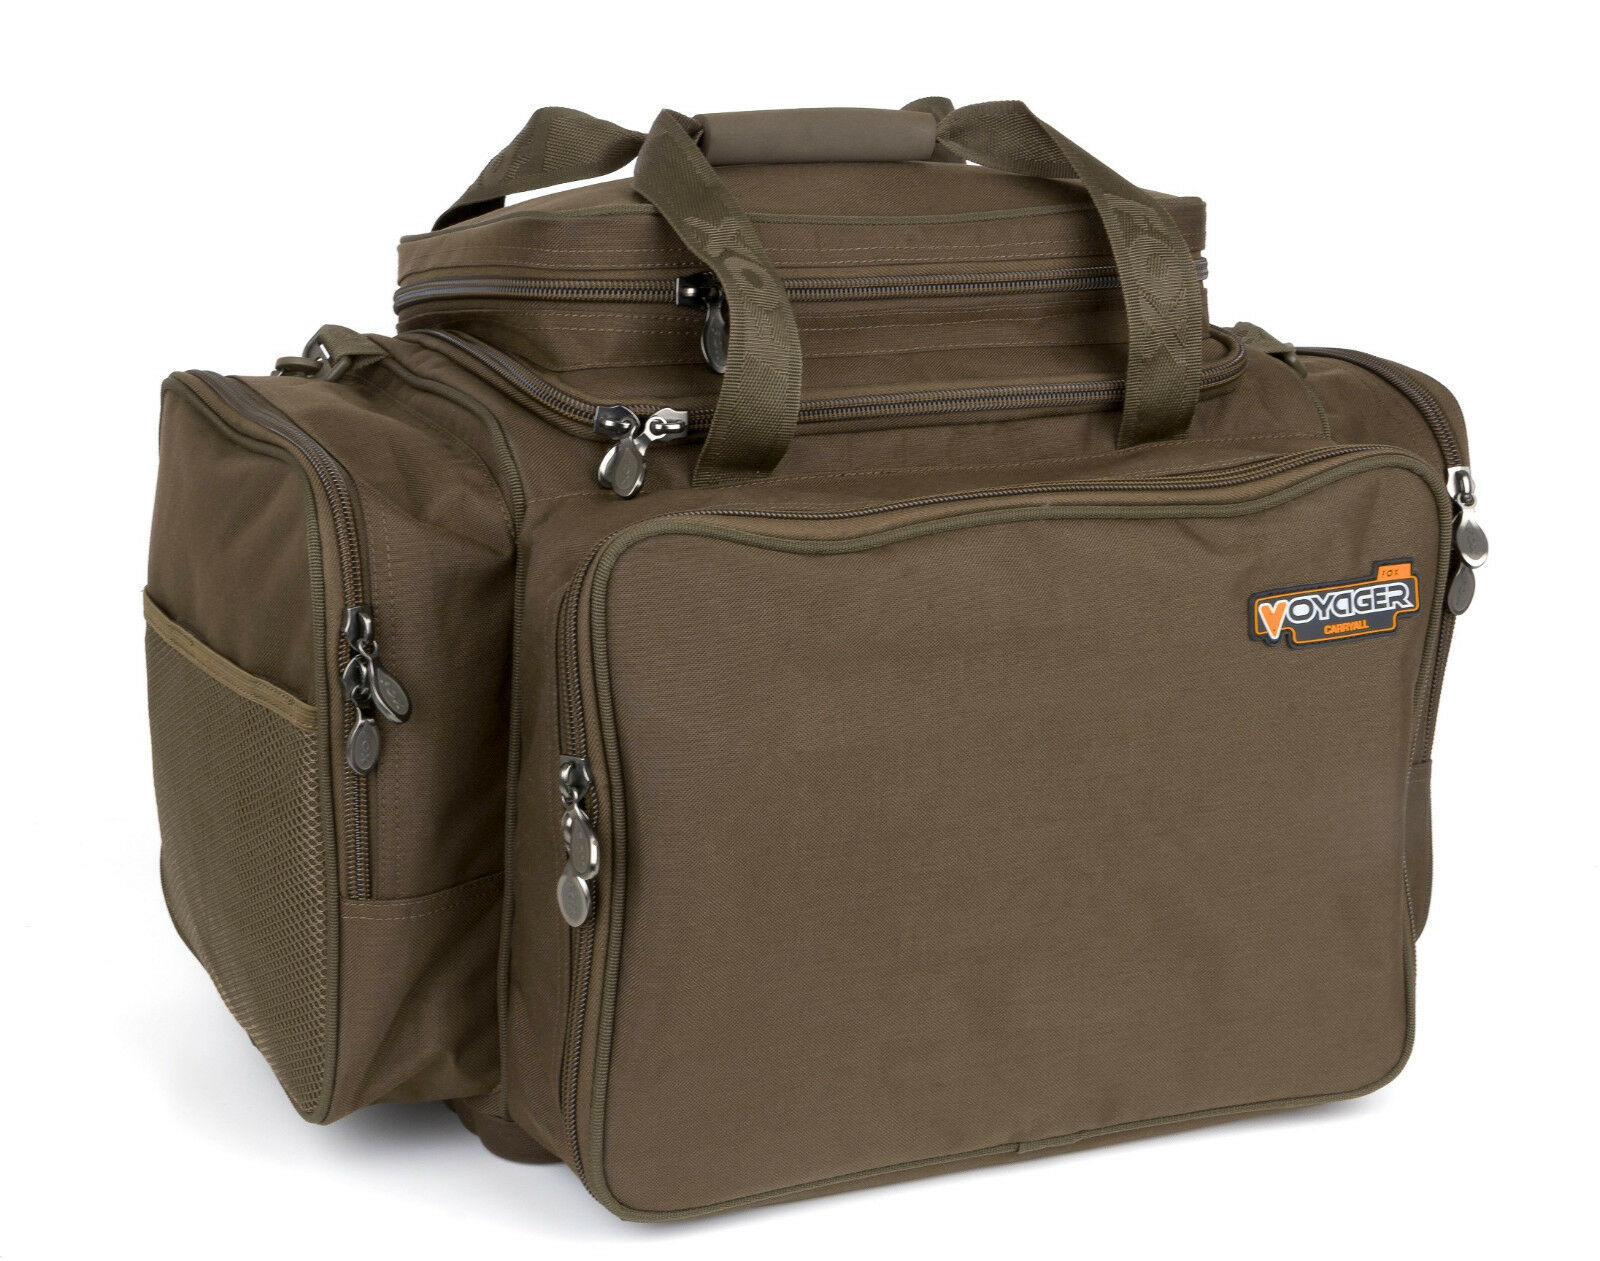 Fox Voyager Large Carryall CLU337 Anglertasche Tasche Bag Angeltasche Anglertasche CLU337 0c1fdc